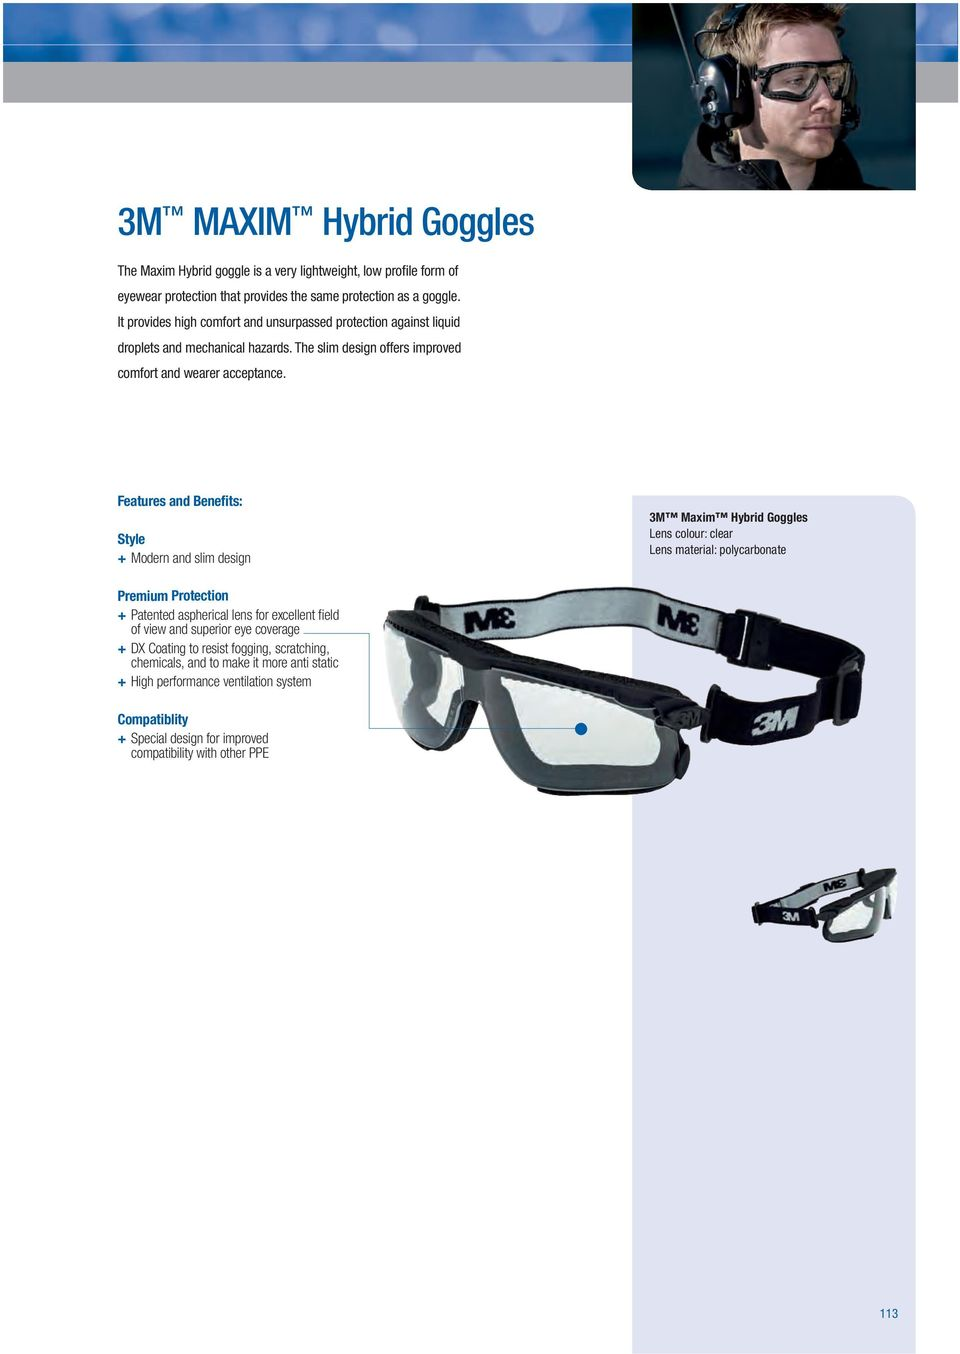 + Modern and slim design 3M Maxim Hybrid Goggles + Patented aspherical lens for excellent fi eld of view and superior eye coverage + DX Coating to resist fogging,